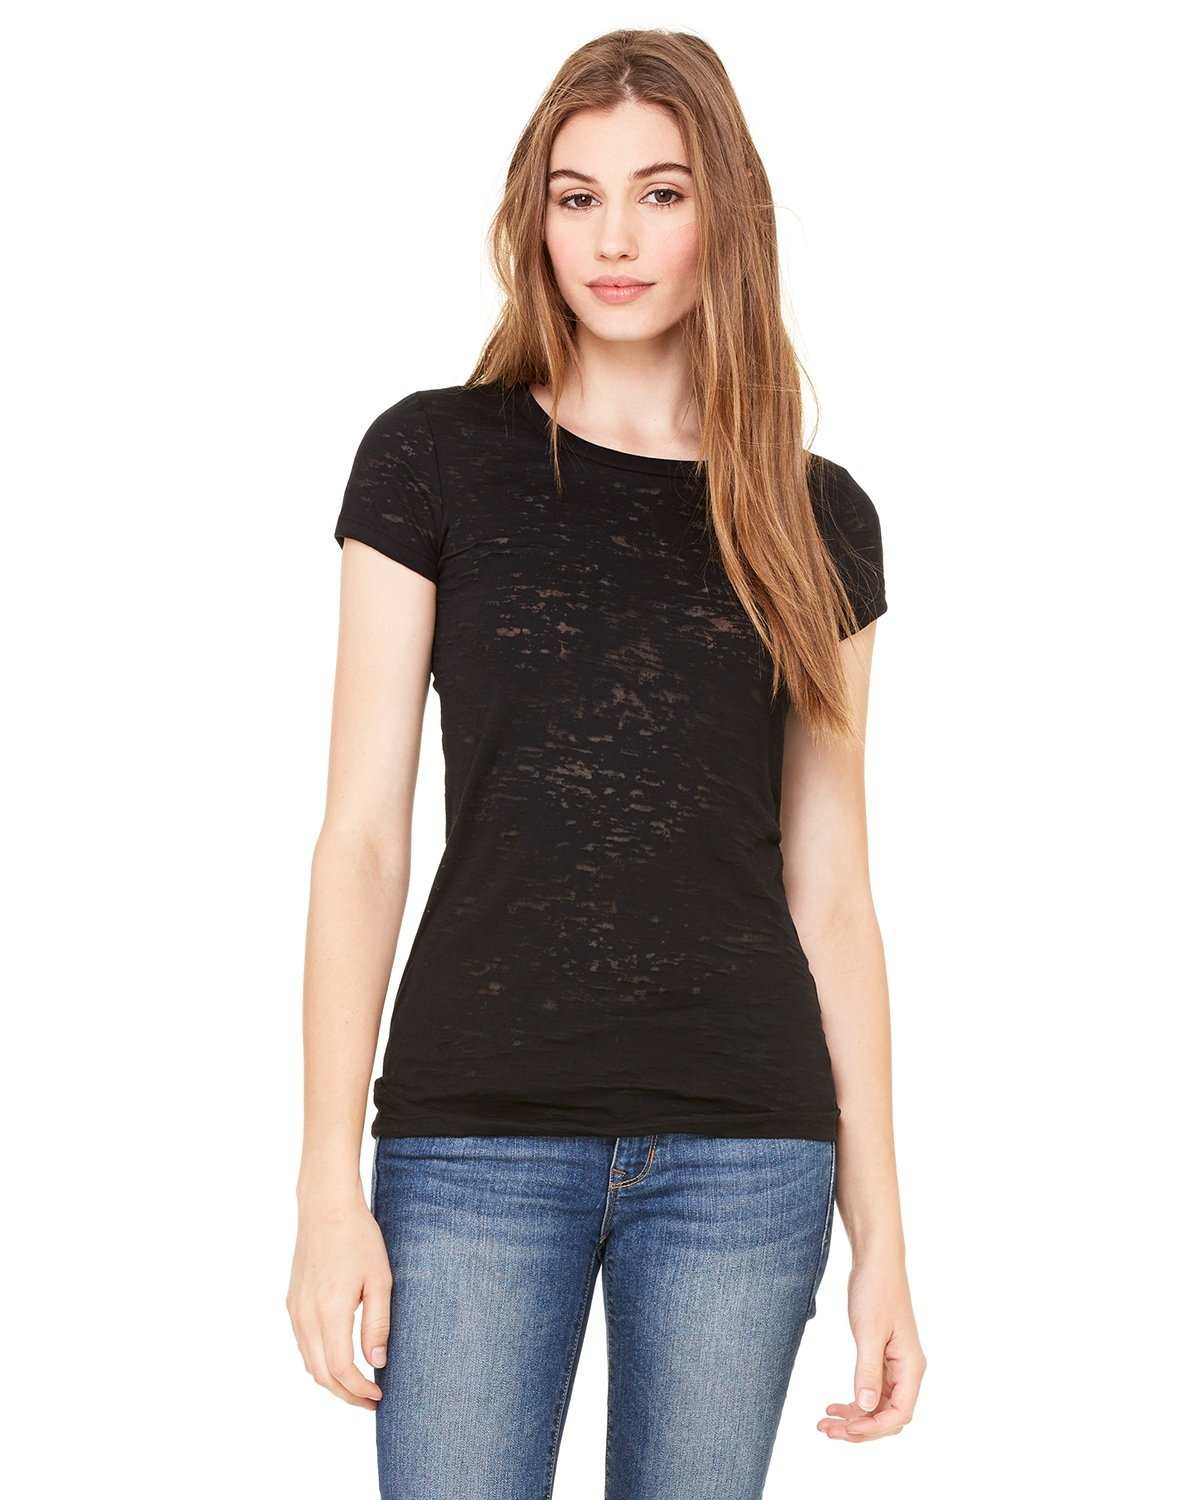 Bella + Canvas - 8601 - Ladies' Burnout Short-Sleeve T-Shirt